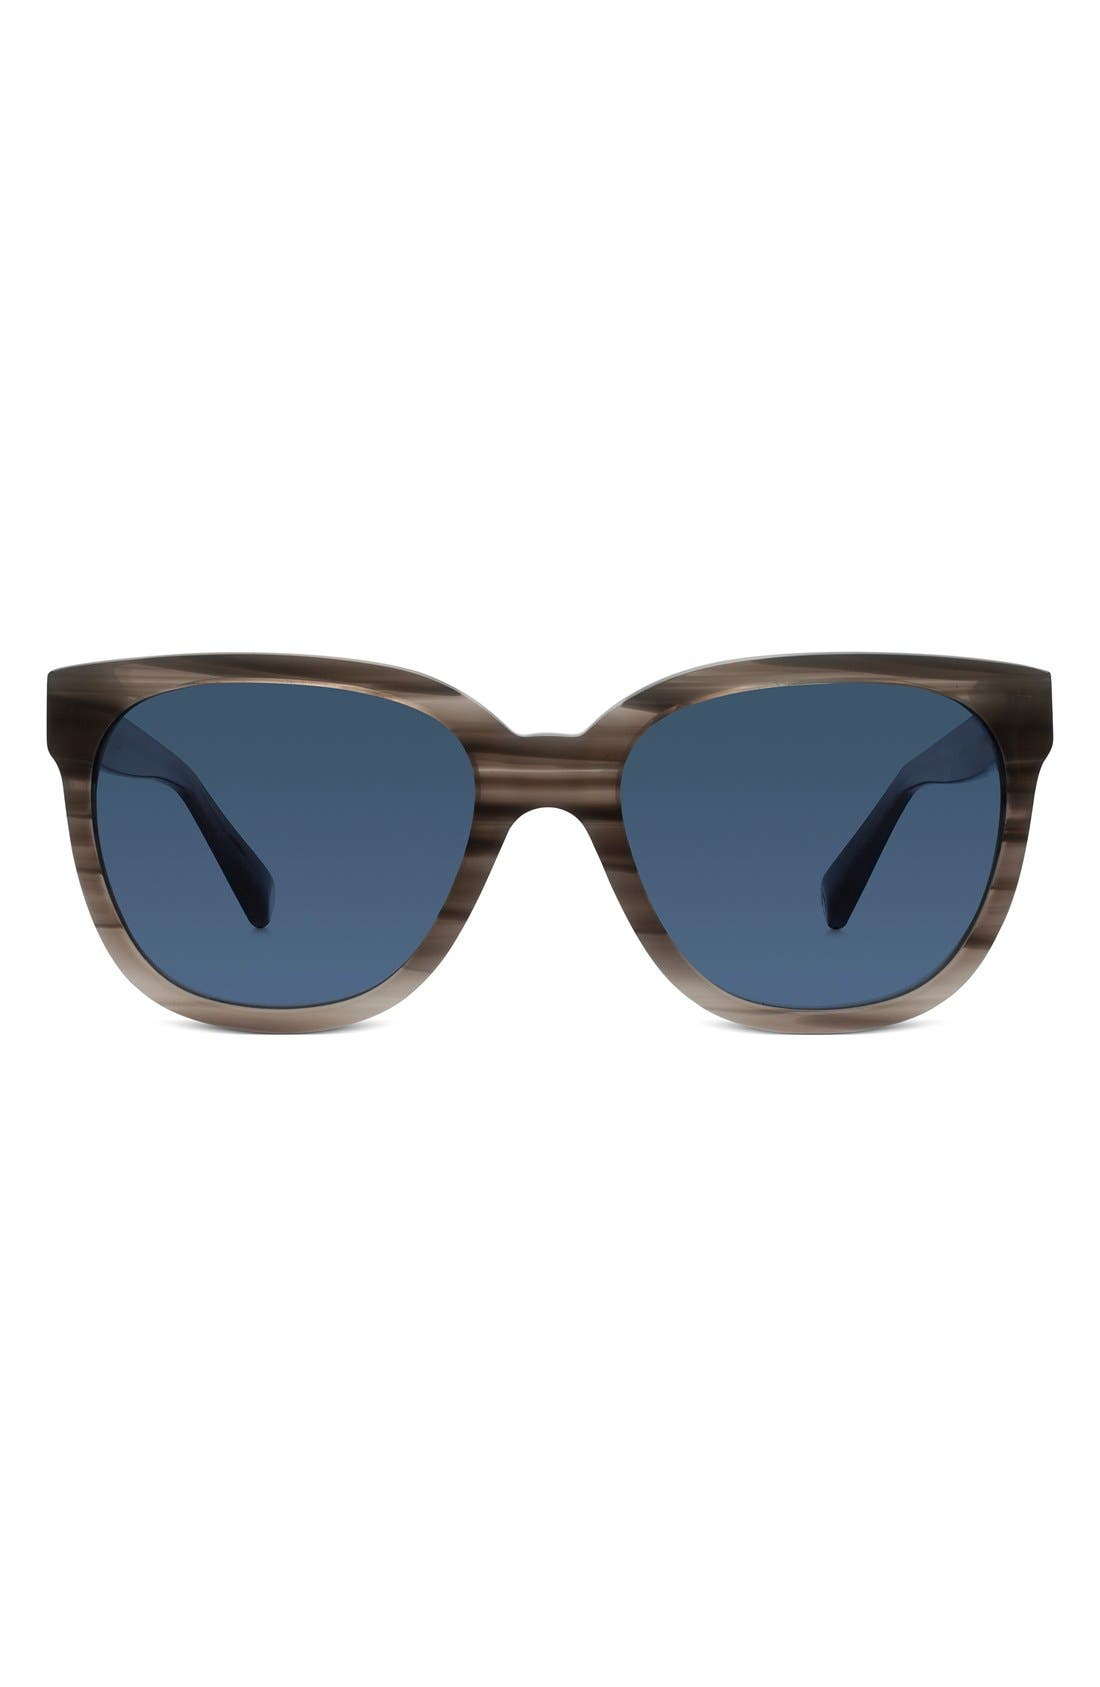 WARBY PARKER,                             'Reilly' 55mm Polarized Sunglasses,                             Main thumbnail 1, color,                             060